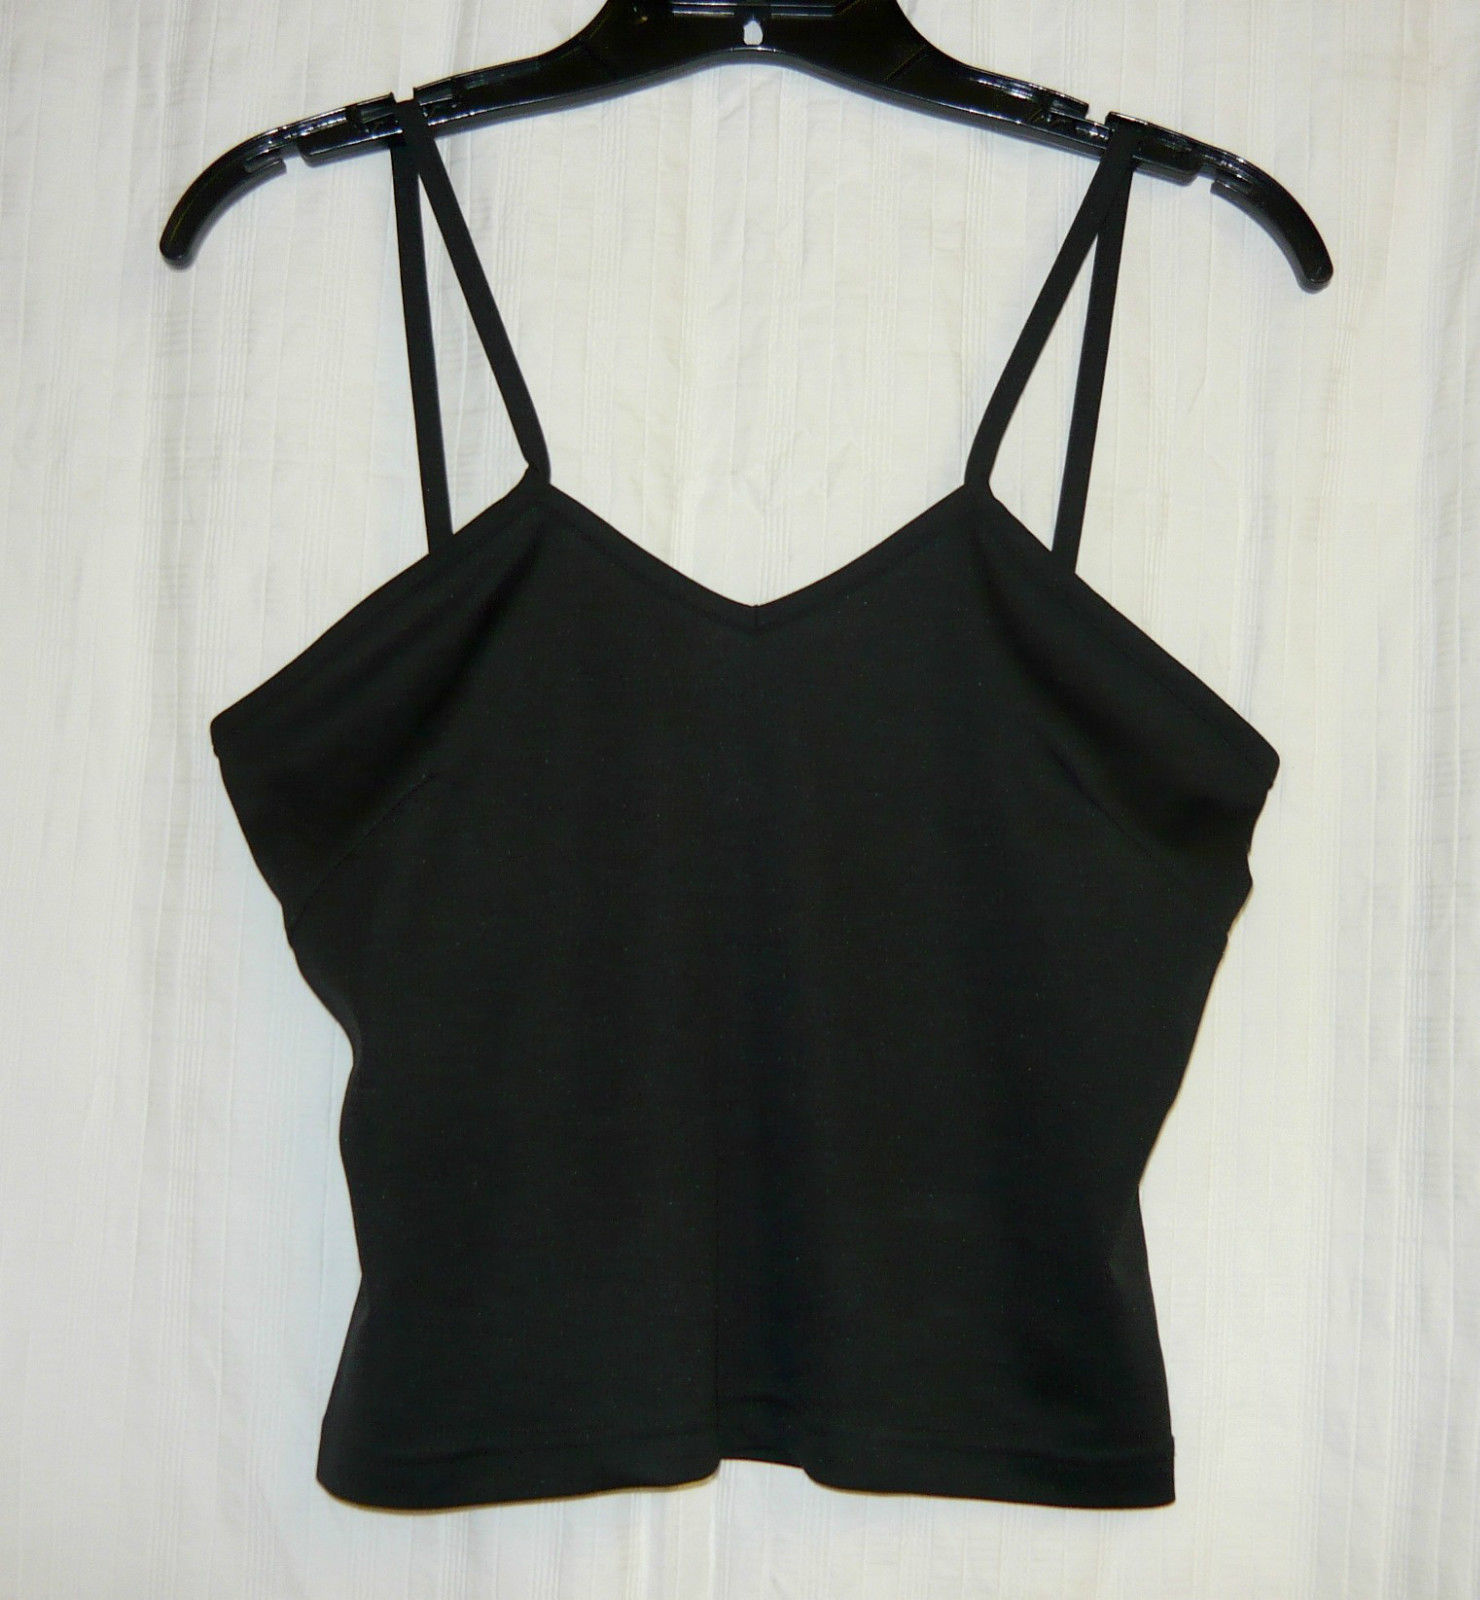 Primary image for Black Spandex/Nylon Top with Spaghetti Straps size Sm.